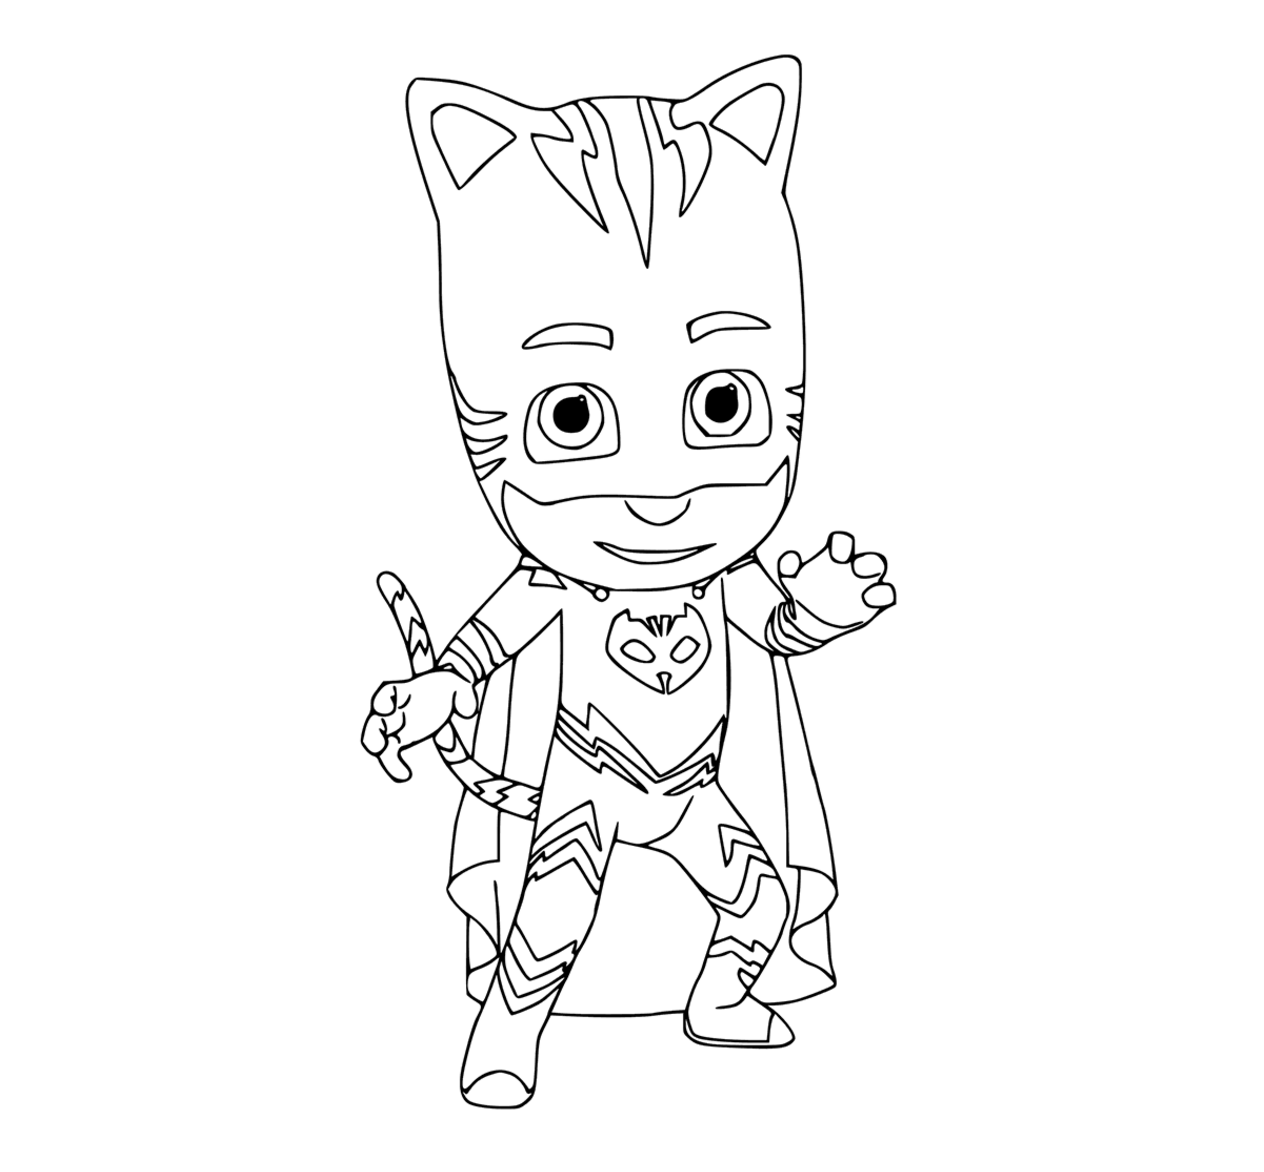 PJ Masks coloring pages to download